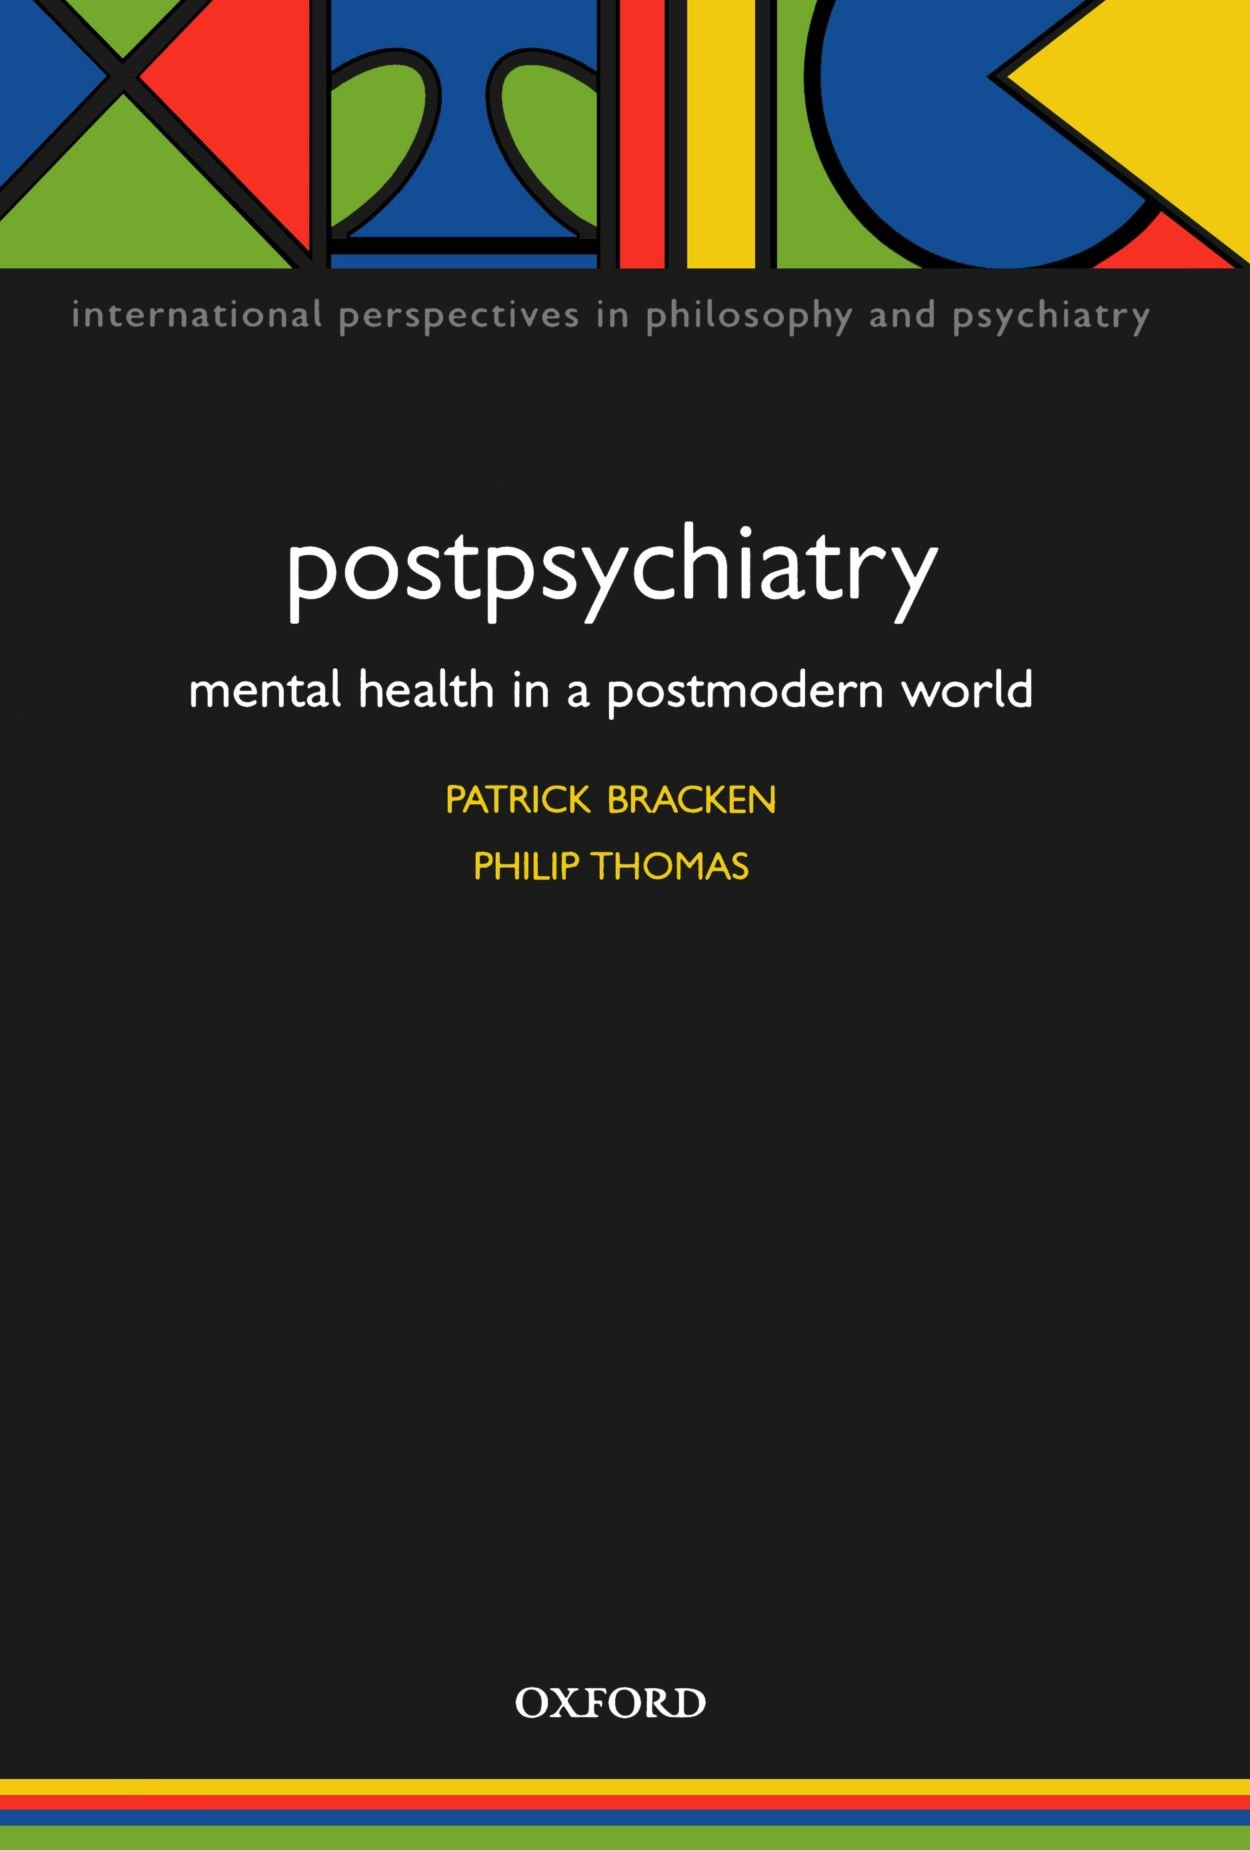 Bracken, Patrick and Philip Thomas. Postpsychiatry: Mental Health in a Postmodern World